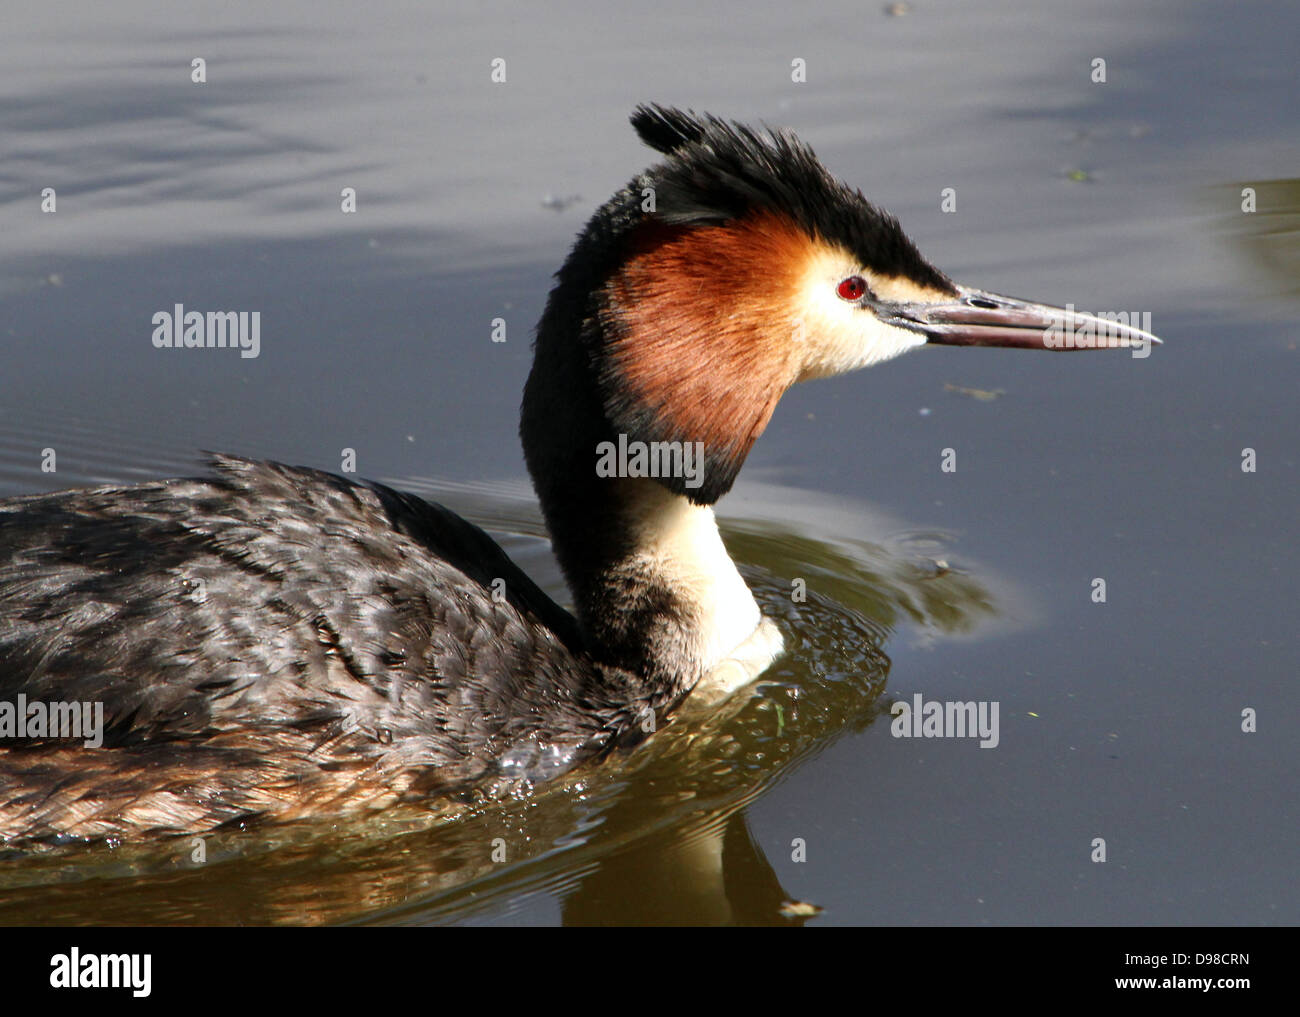 Close-up of a Great Crested Grebes (Podiceps cristatus) - Stock Image